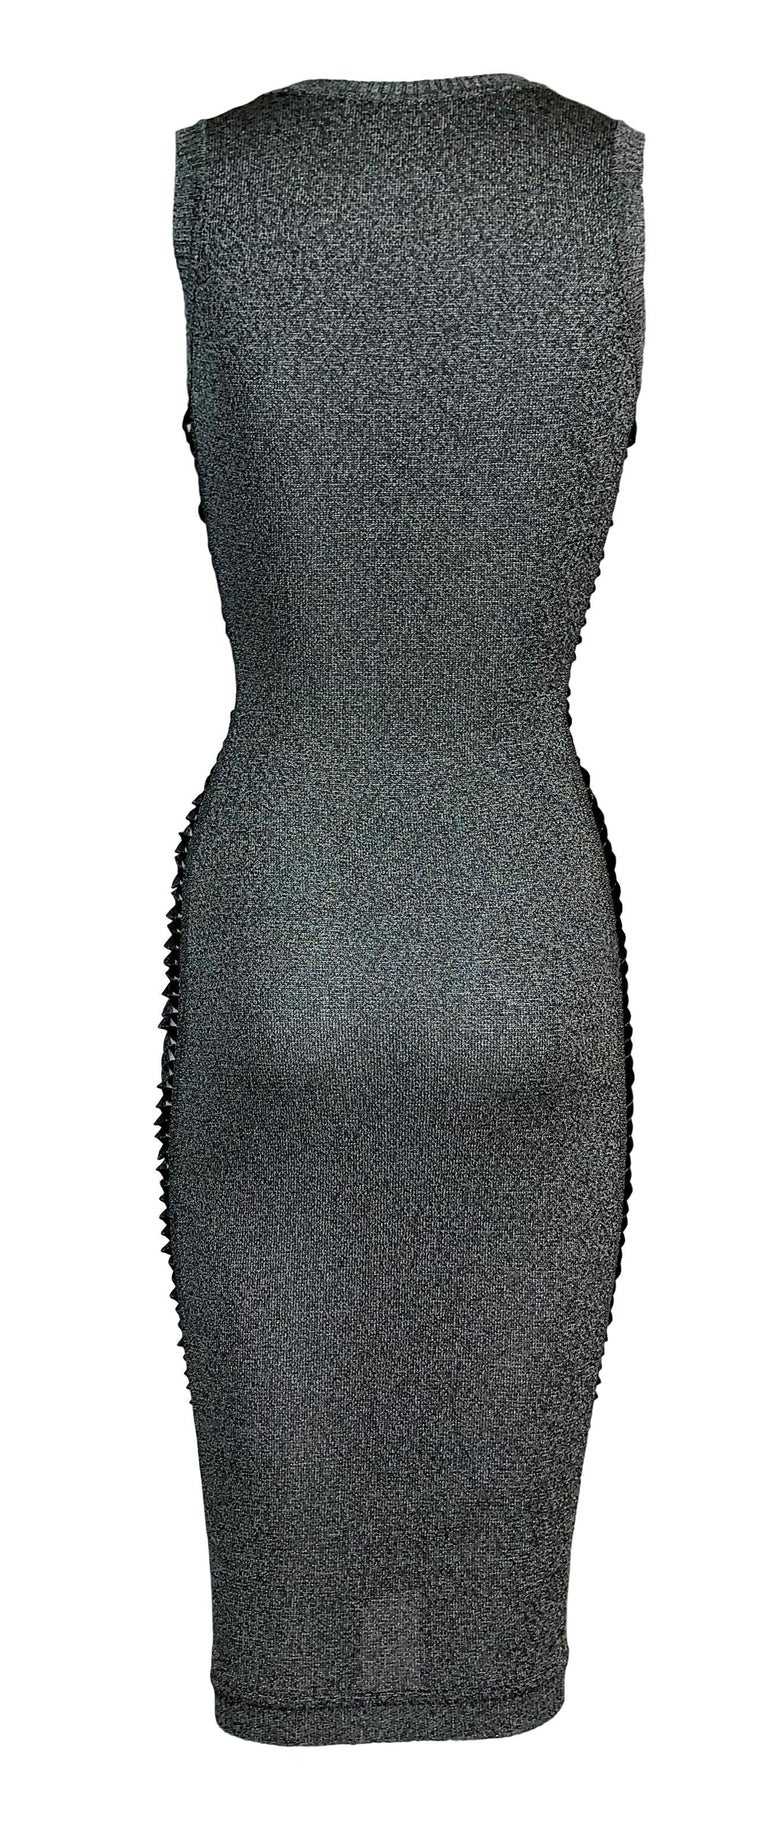 S/S 2001 Christian Dior John Galliano Gray Slashed Sides Bodycon Dress In Good Condition For Sale In Yukon, OK